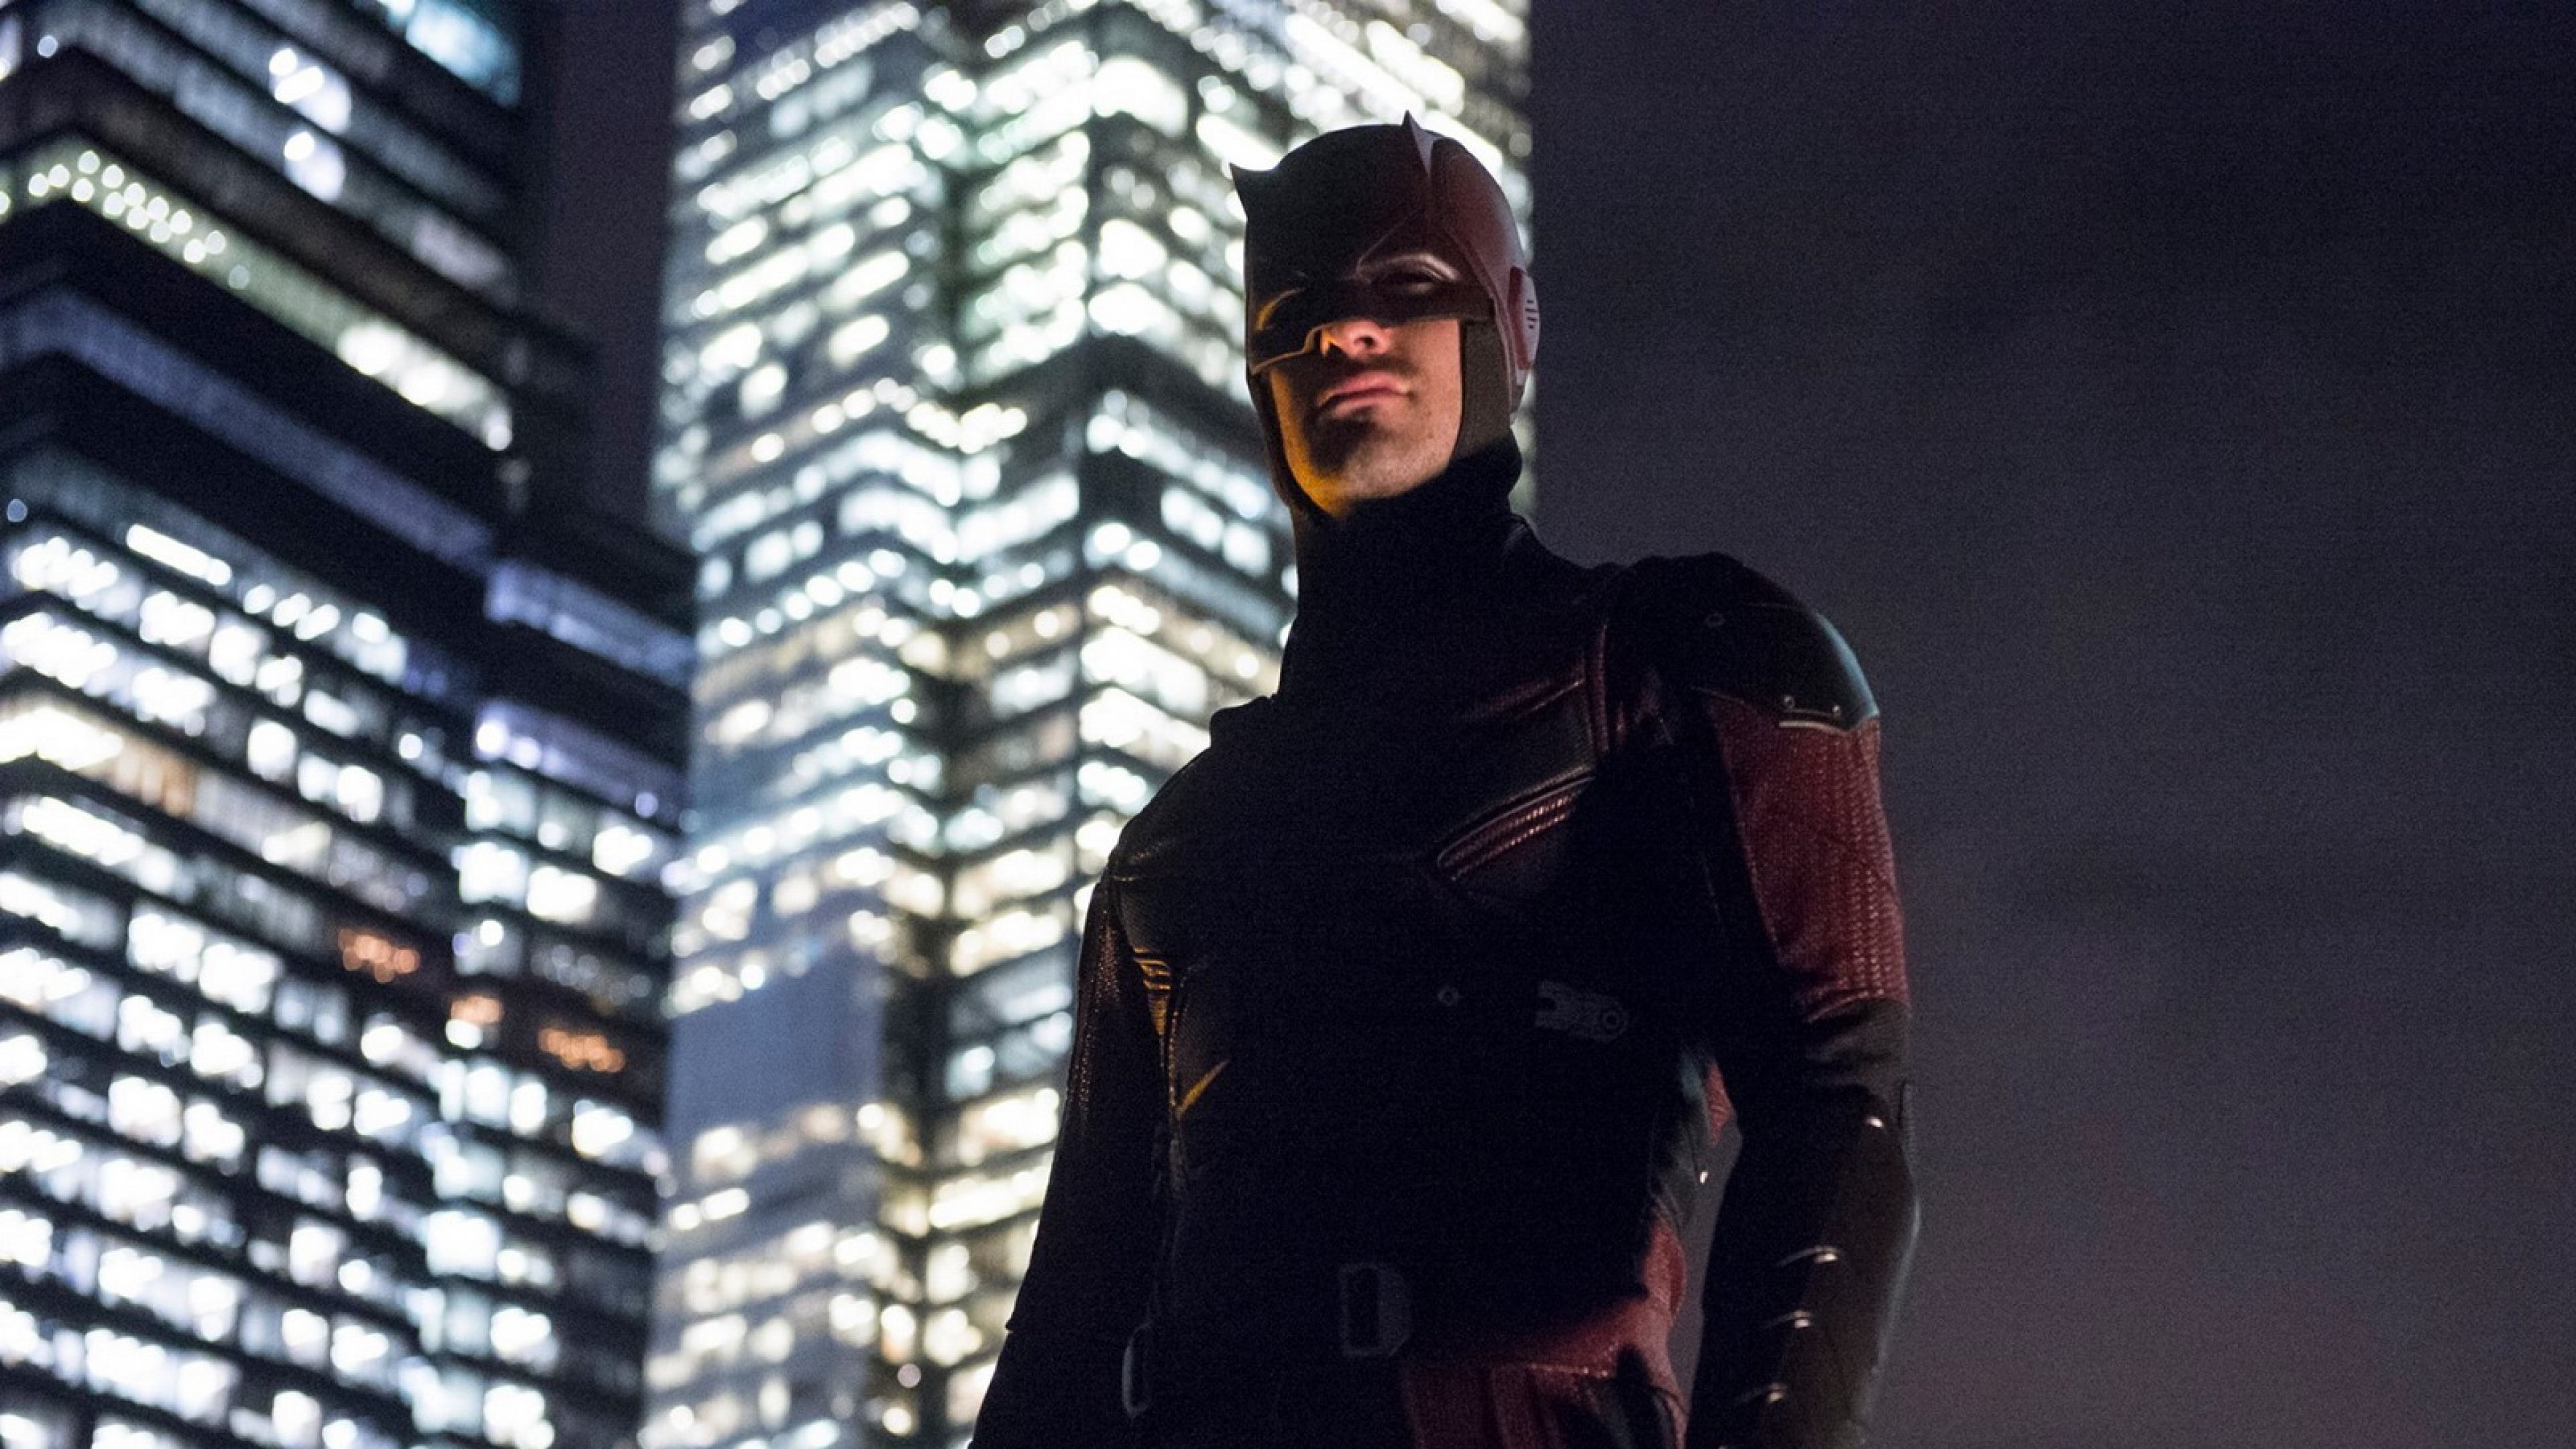 Daredevil Hd Tv Shows 4k Wallpapers Images Backgrounds Photos And Pictures